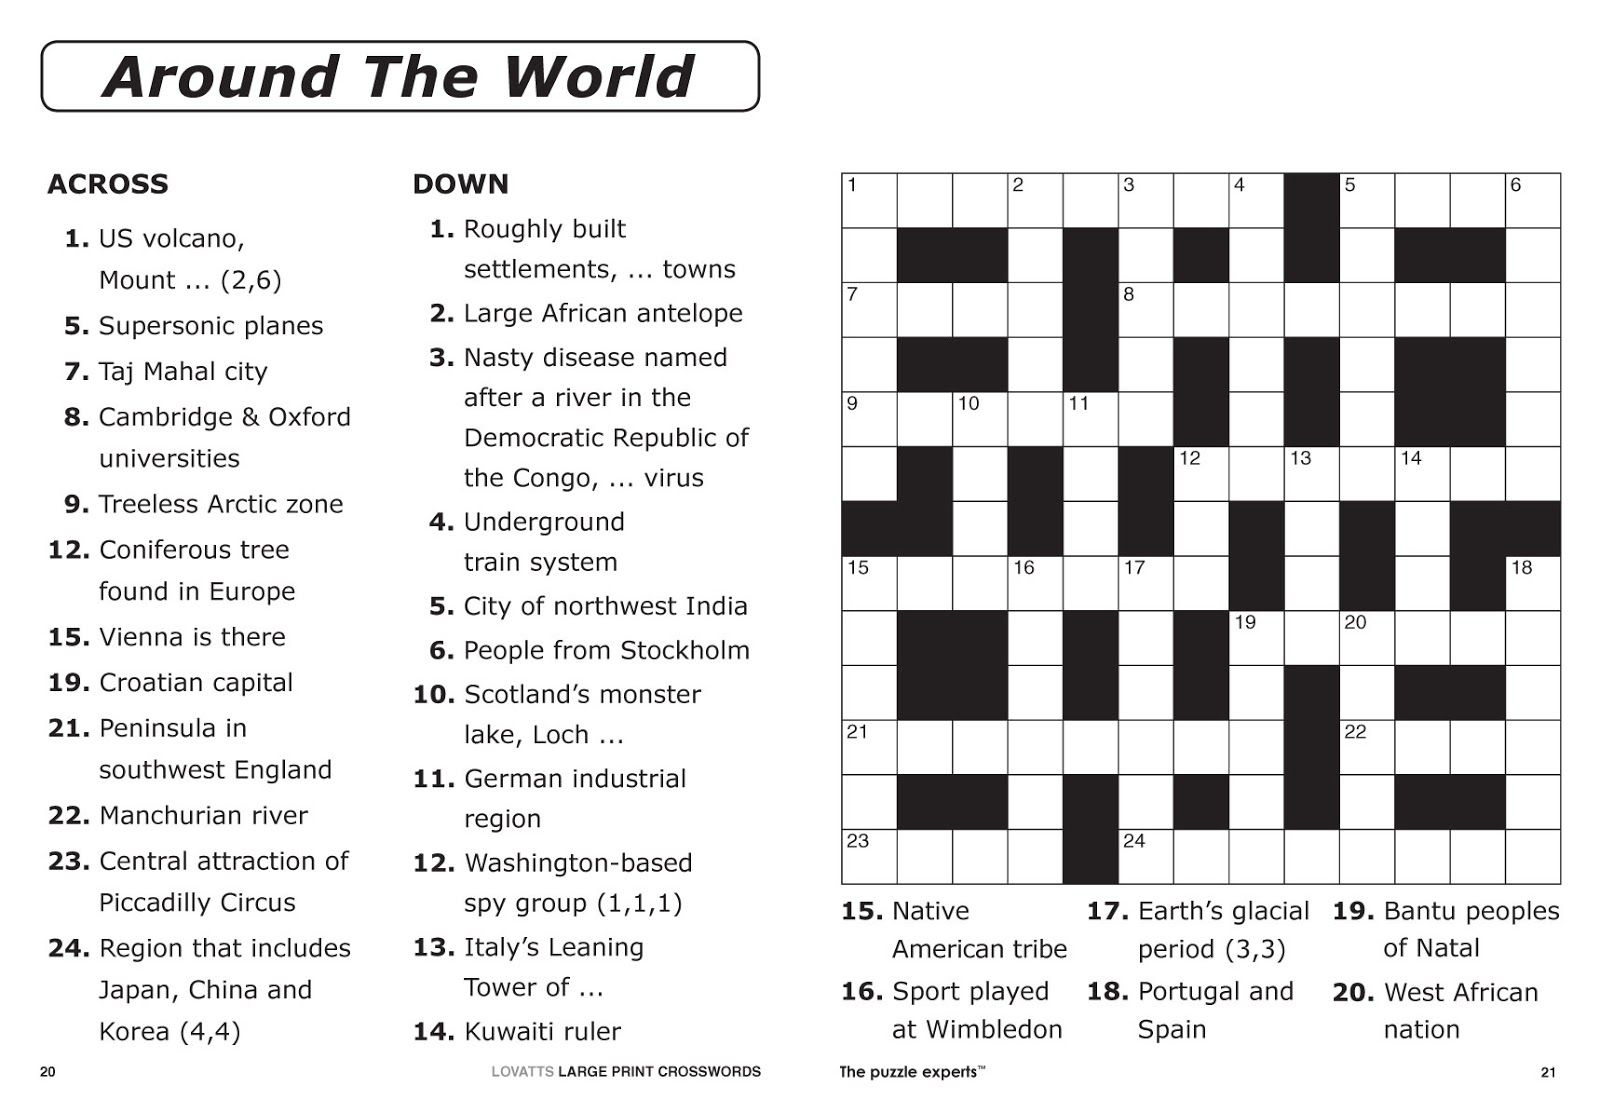 Free Printable Large Print Crossword Puzzles | M3U8 - Printable Crossword For 8 Year Olds